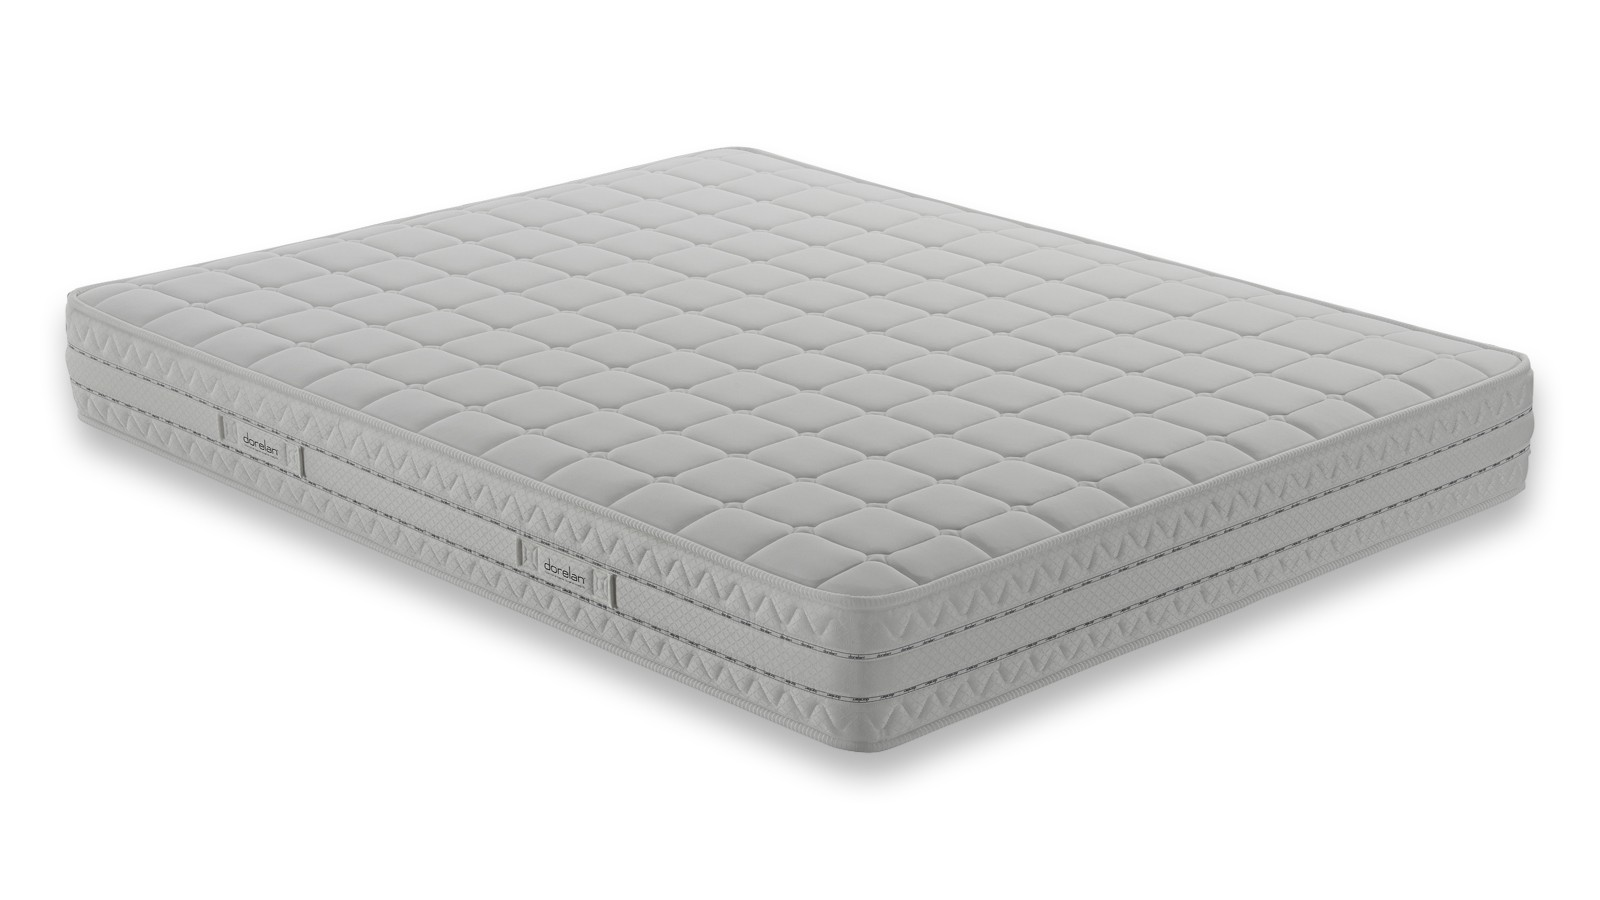 Sleep Comfort Plus Mattress